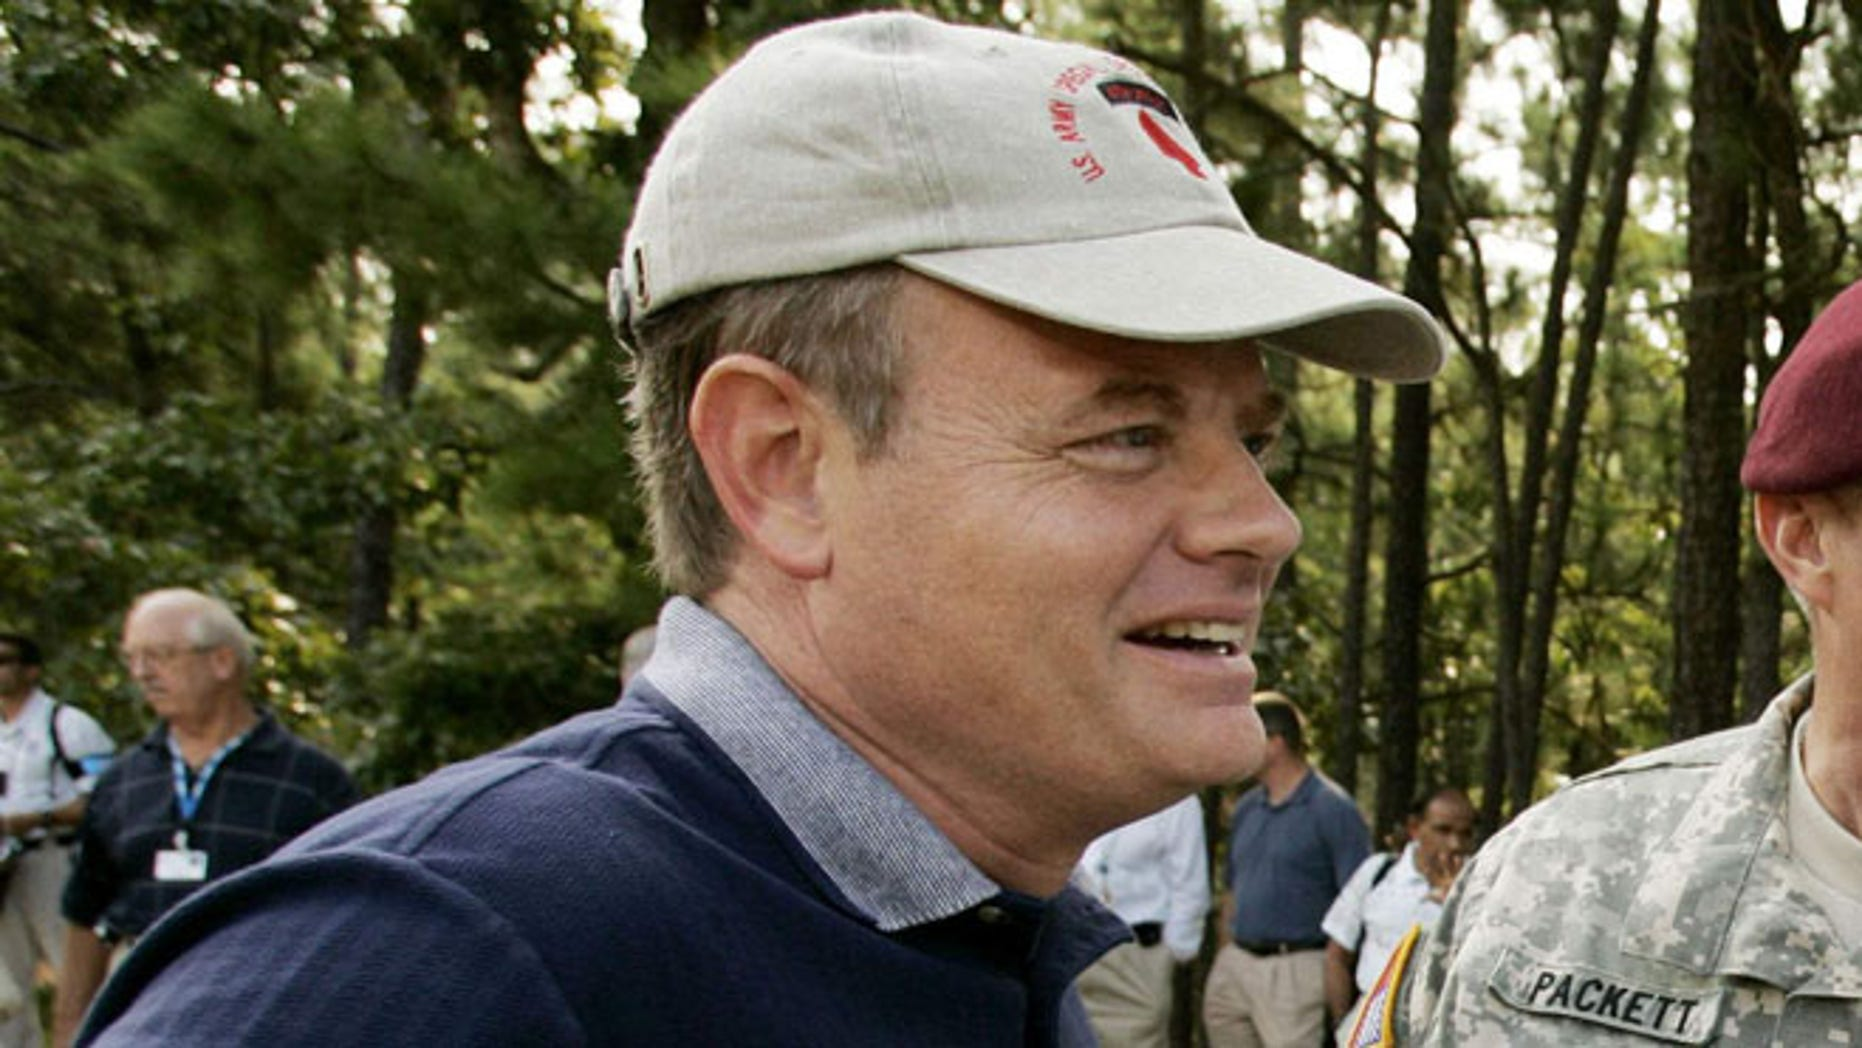 FILE: August 15, 2005: Rep. Mike McIntyre, D-N.C., at Fort Bragg in Fayetteville, N.C. .